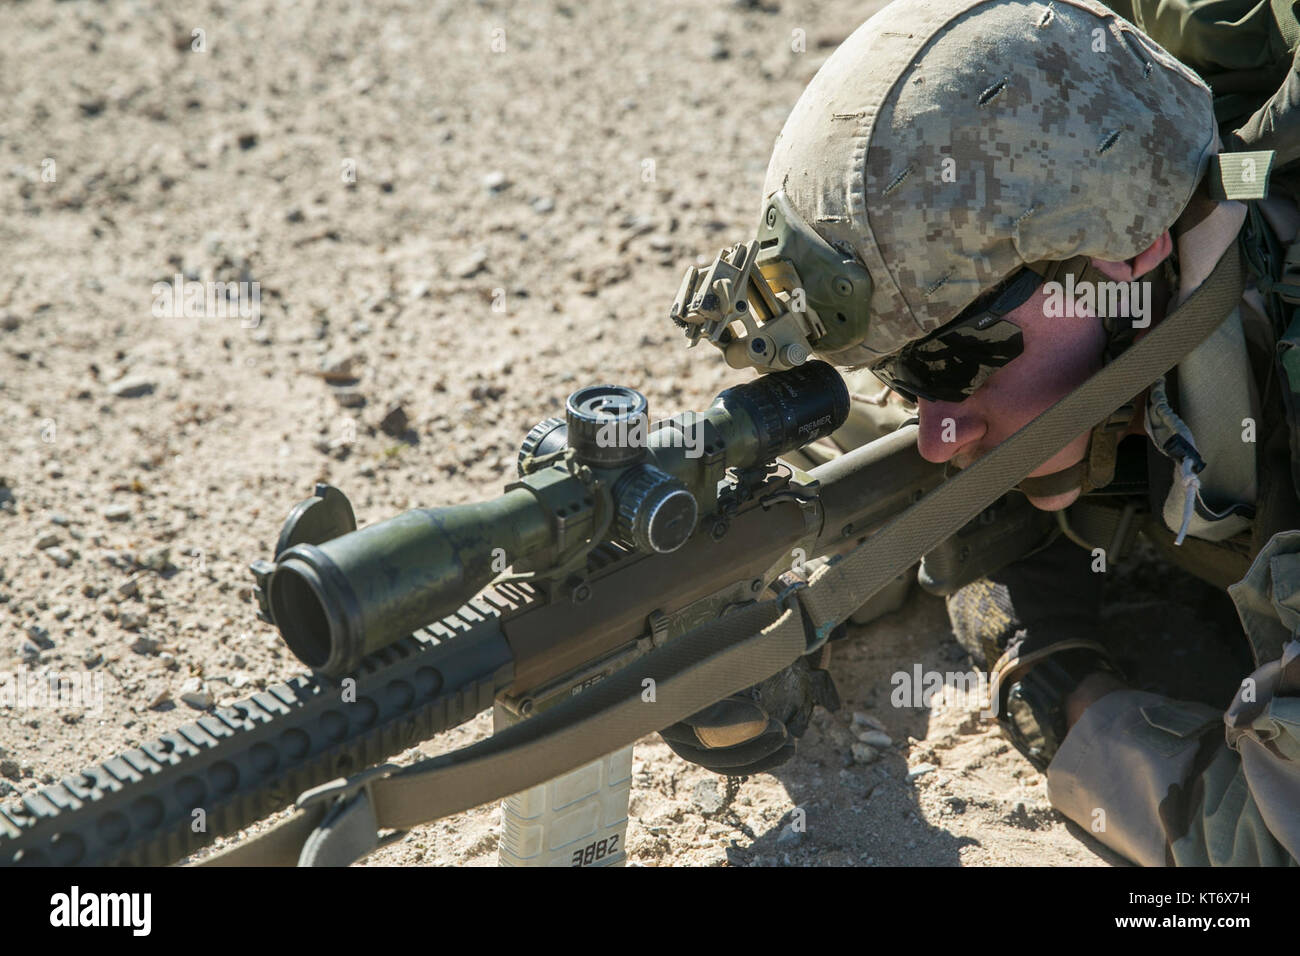 U.S. Marine Corps Lance Cpl. Gregory Kramers, a rifleman with 2nd Battalion, 5th Marine Regiment, 1st Marine Division - Stock Image